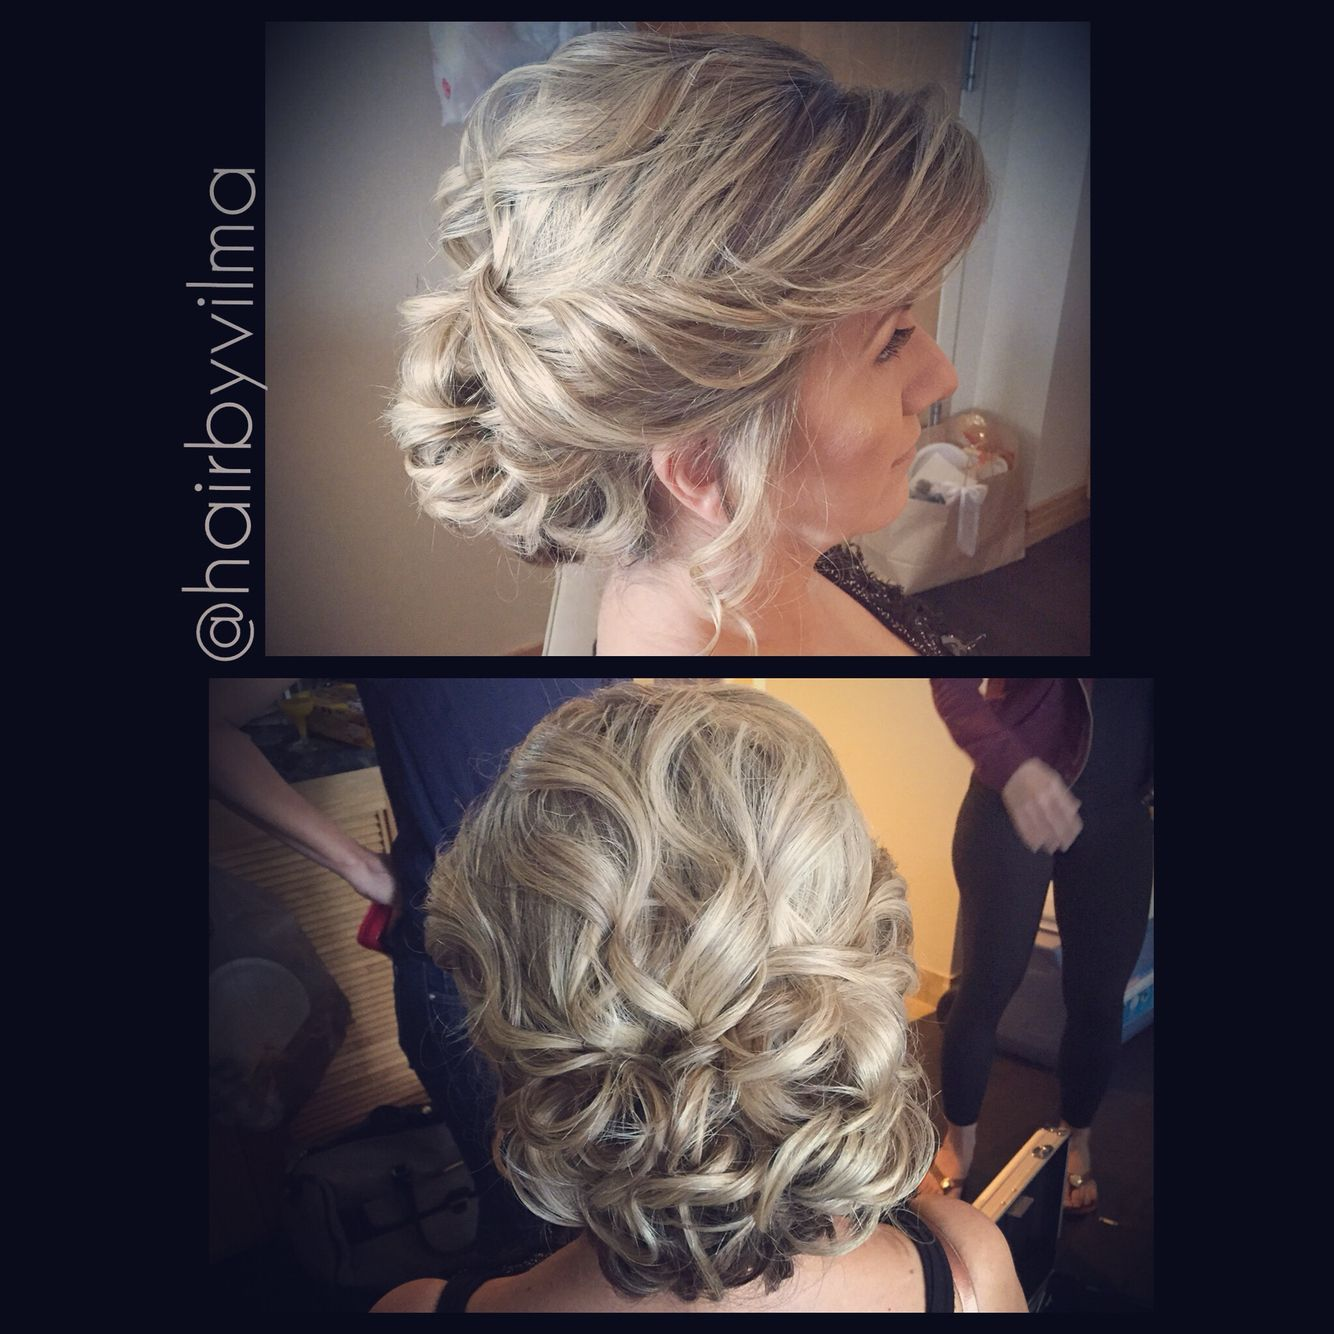 Wedding Hairstyles Mother Of The Groom: Mother Of The Groom Hairstyle!